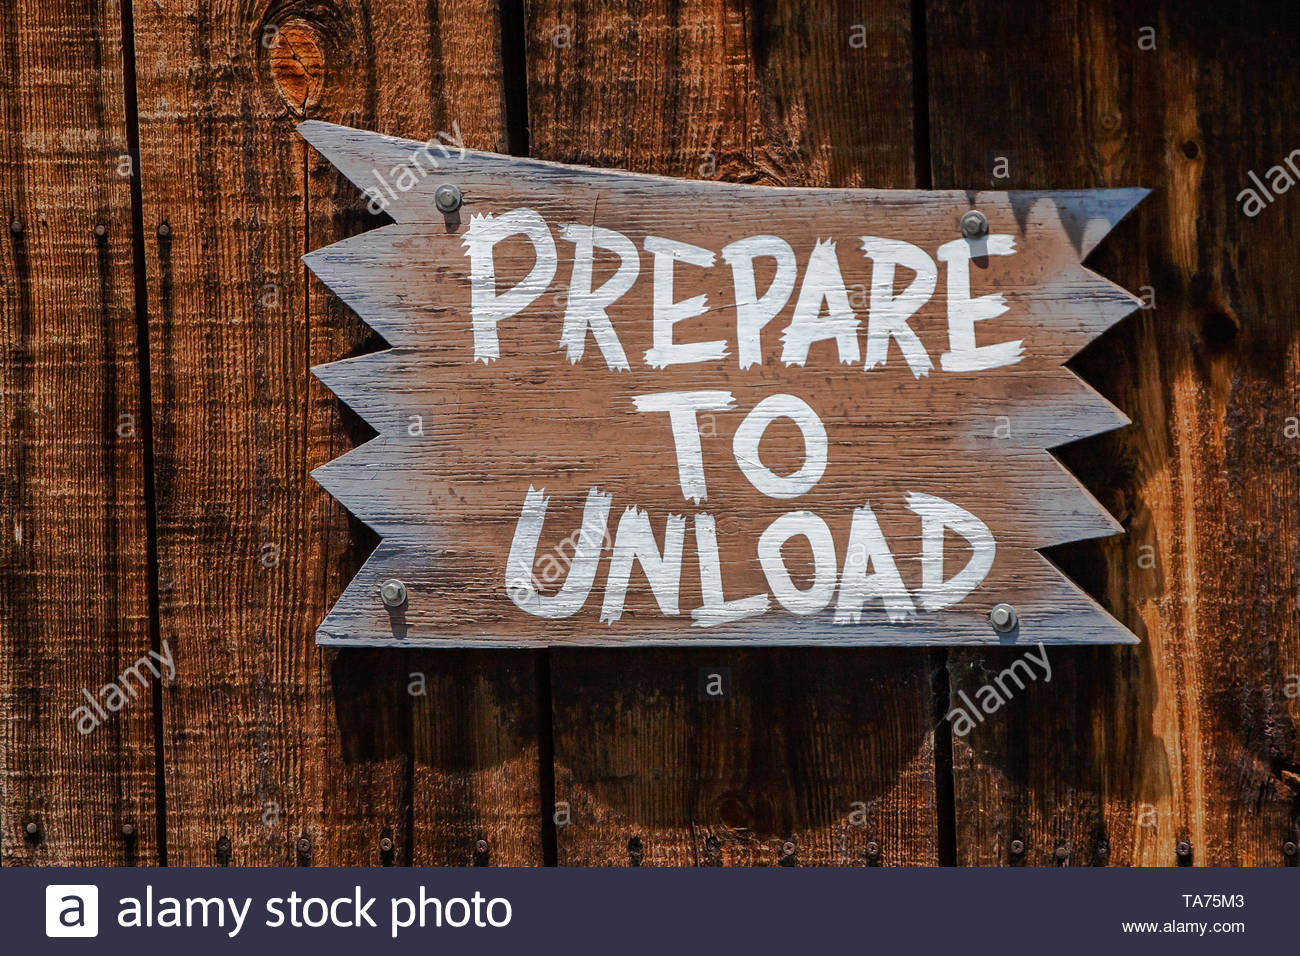 Prepare to unload painted wooden sign - Stock Image